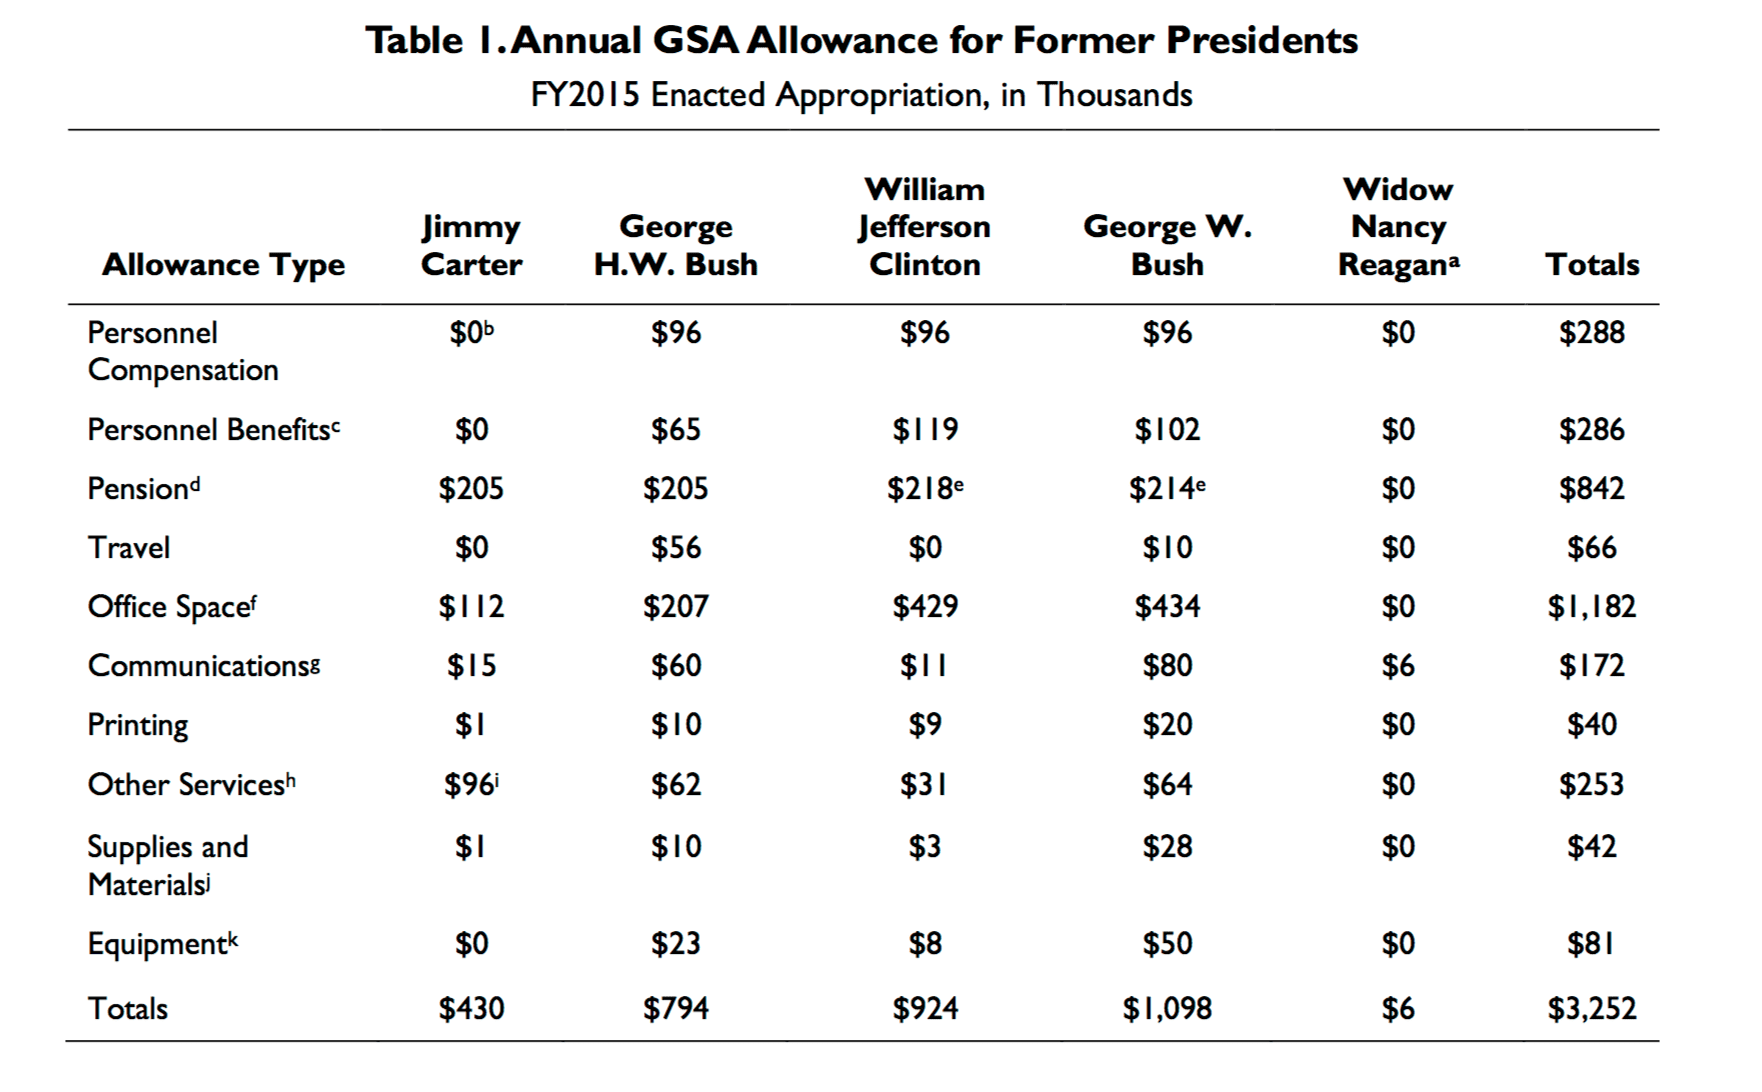 Retirement Money for Ex-Presidents: How Much Will Obama Get?